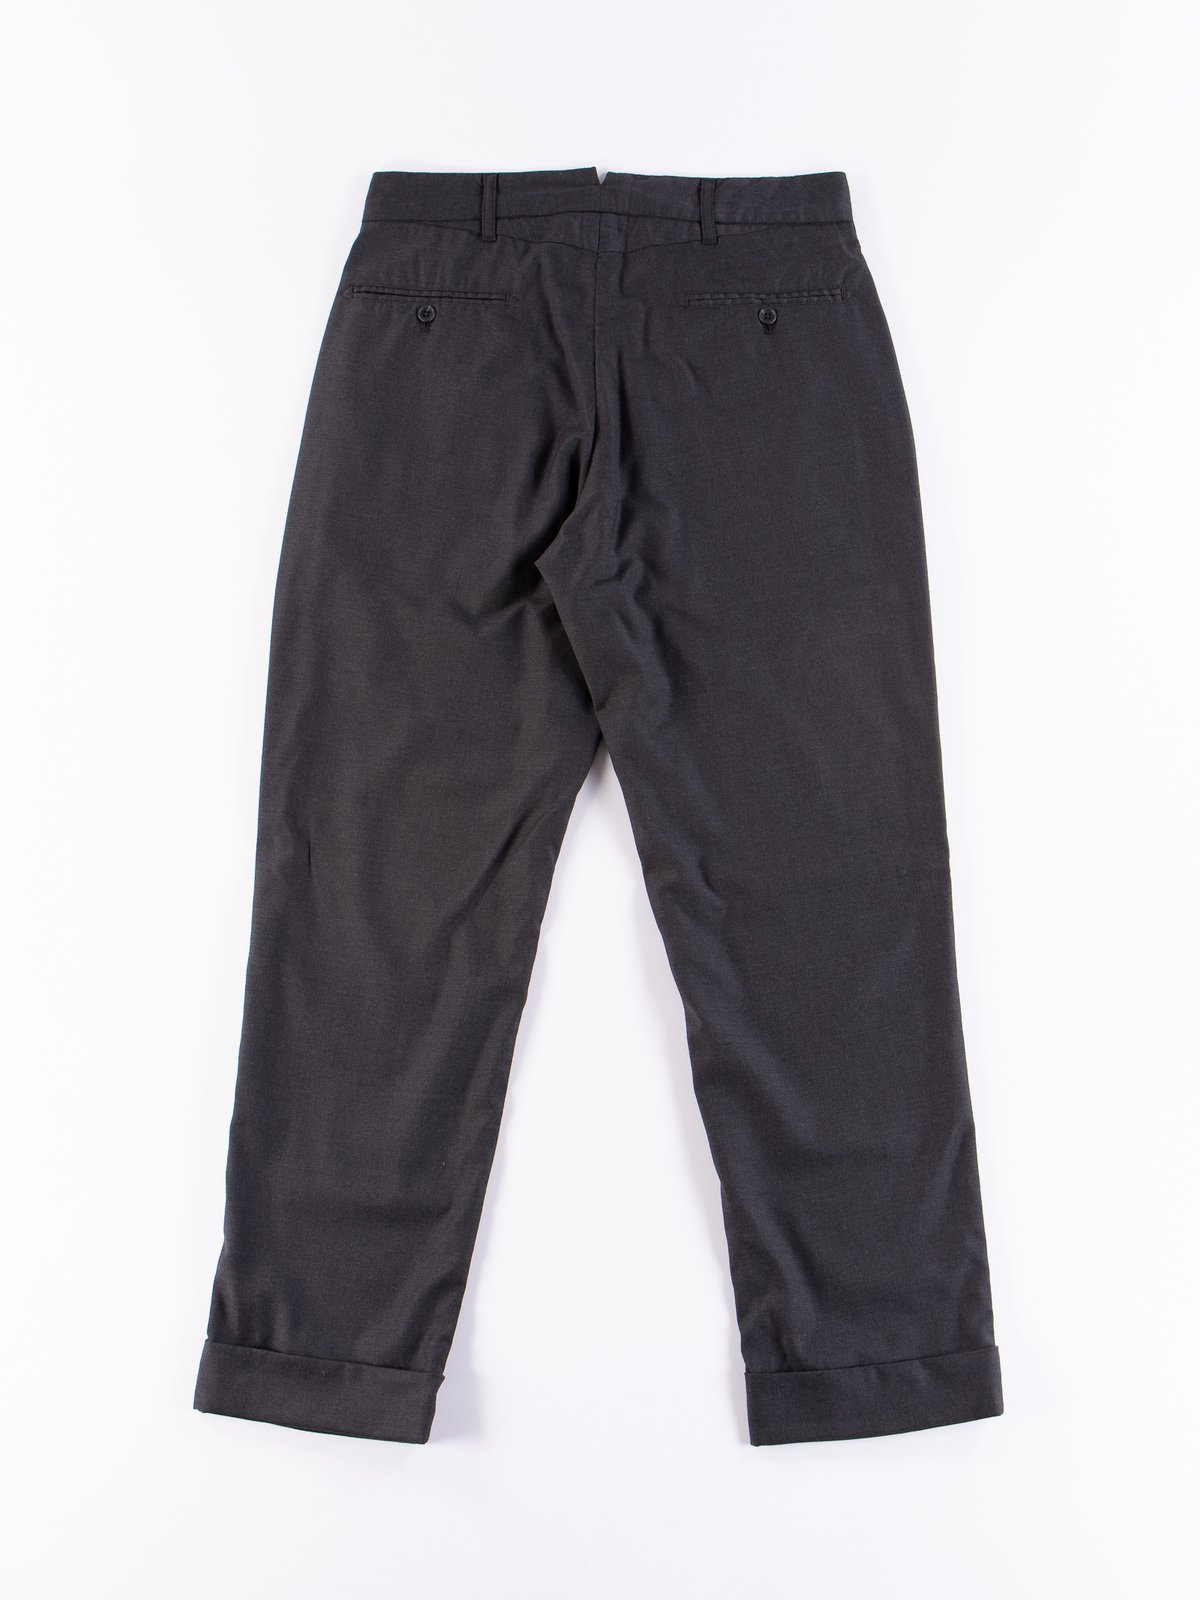 Charcoal Worsted Wool Gabardine Andover Pant - Image 7